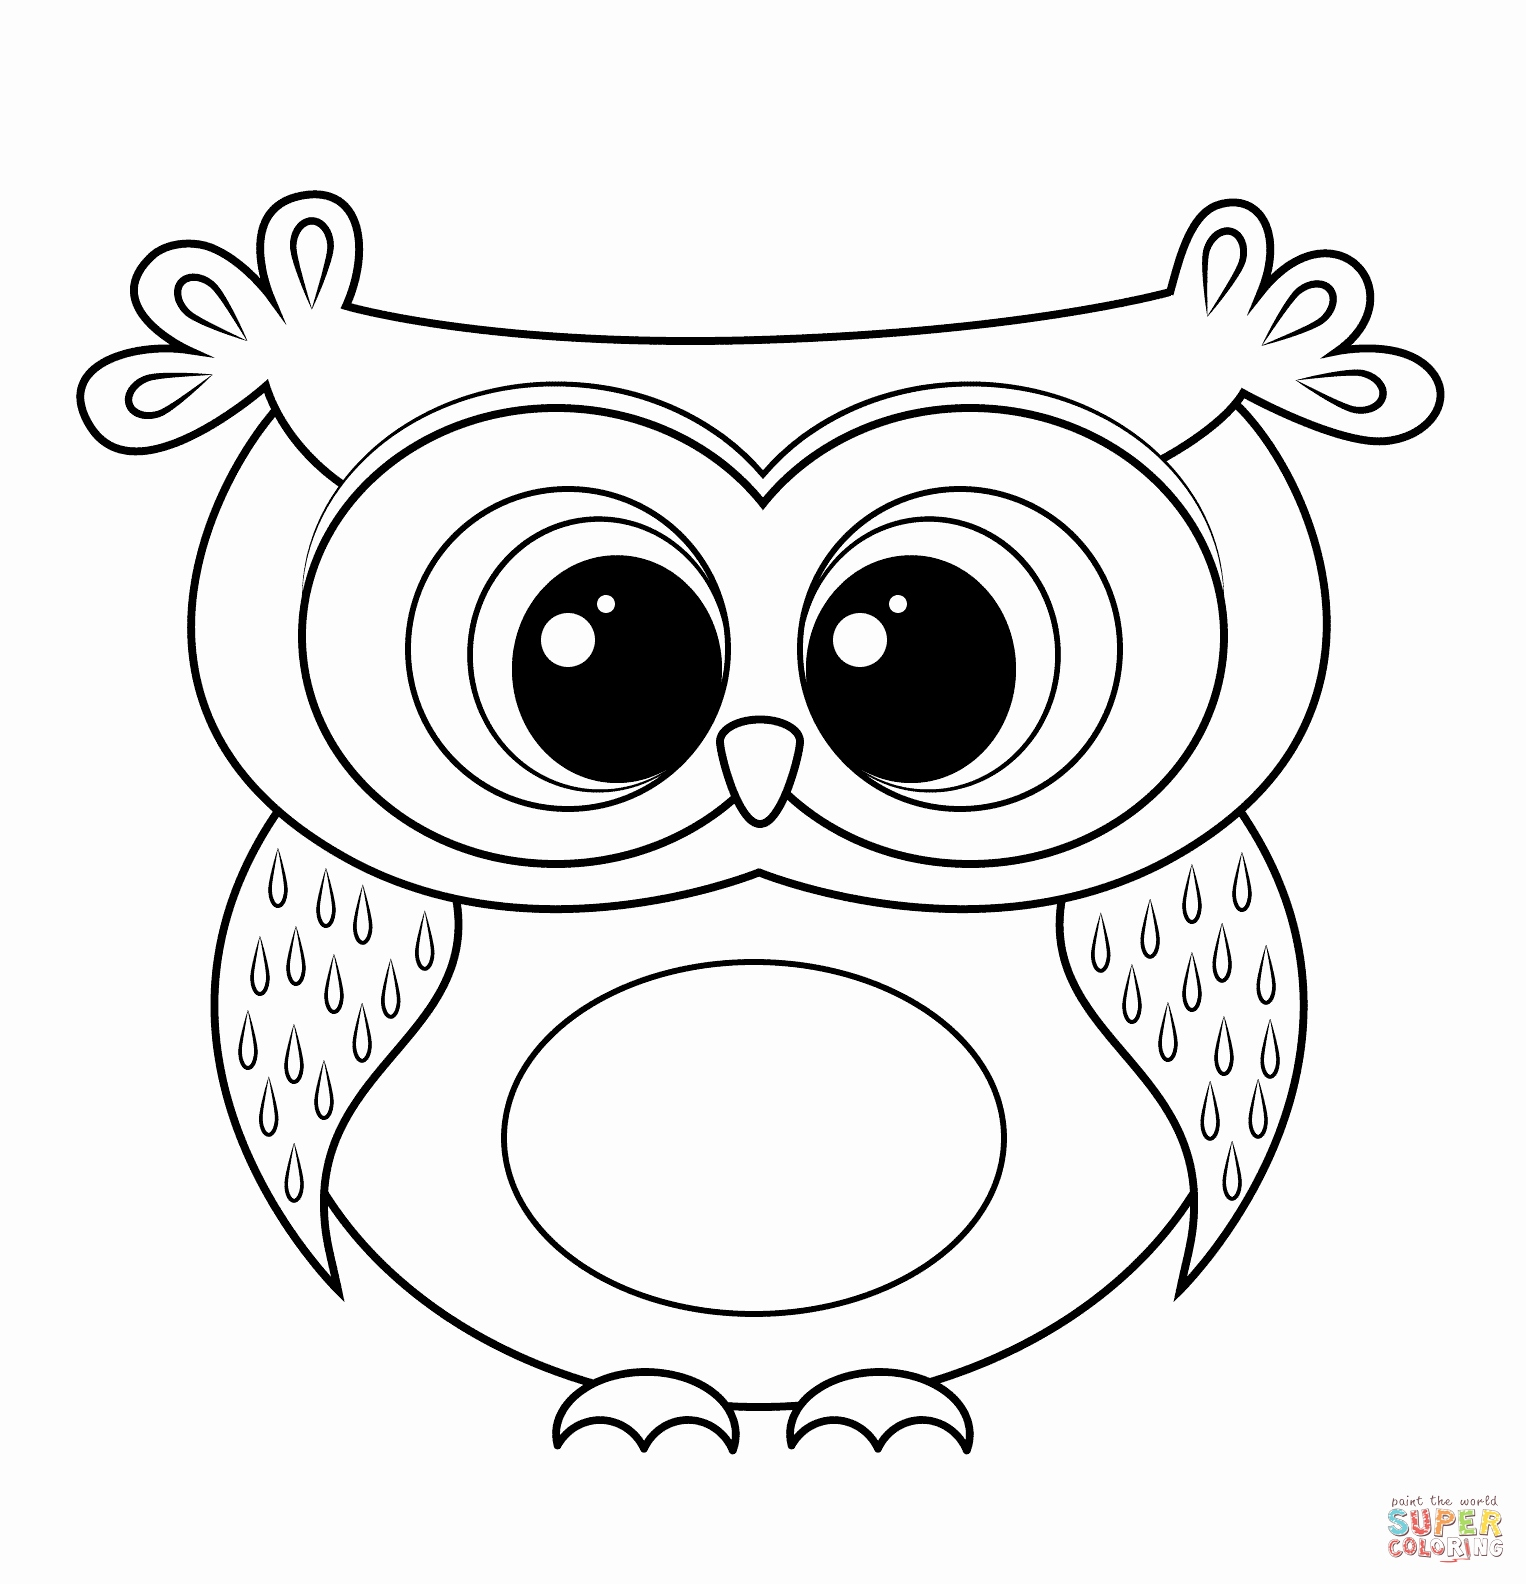 1526x1584 Color Book Games For Girls Inspirational Cartoon Owl Coloring Page